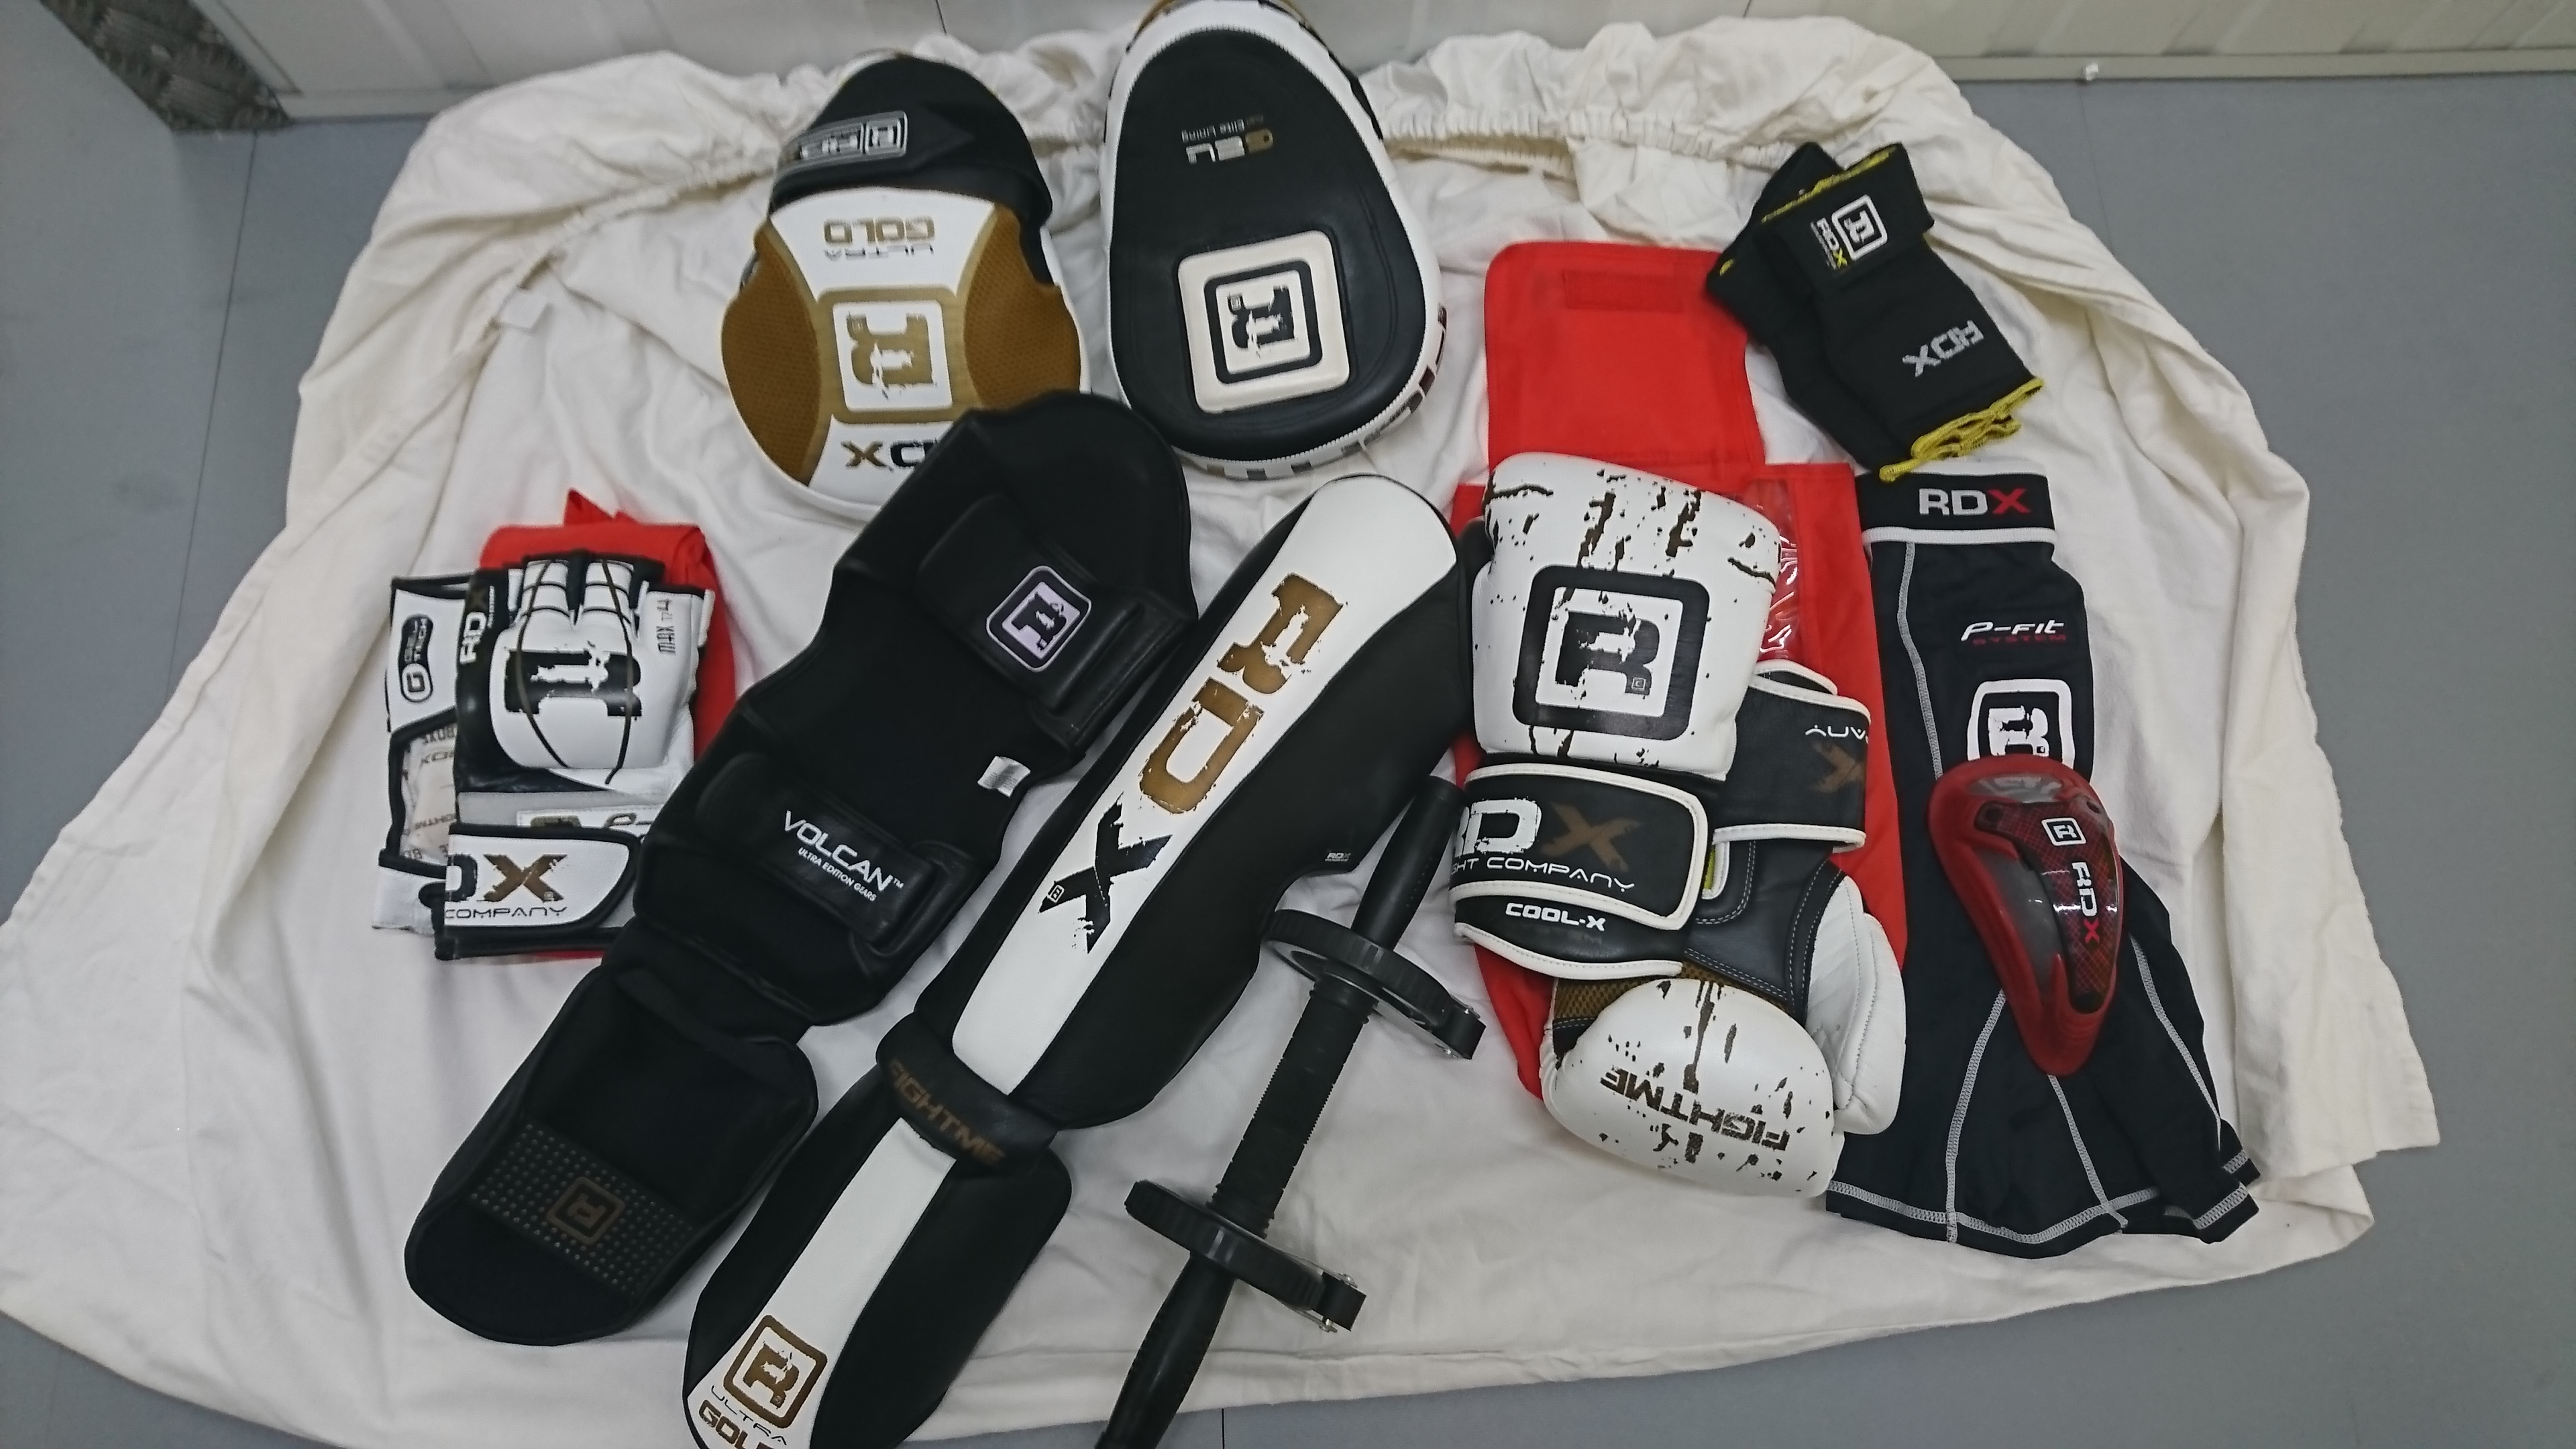 Martial Arts RDX sport equipment